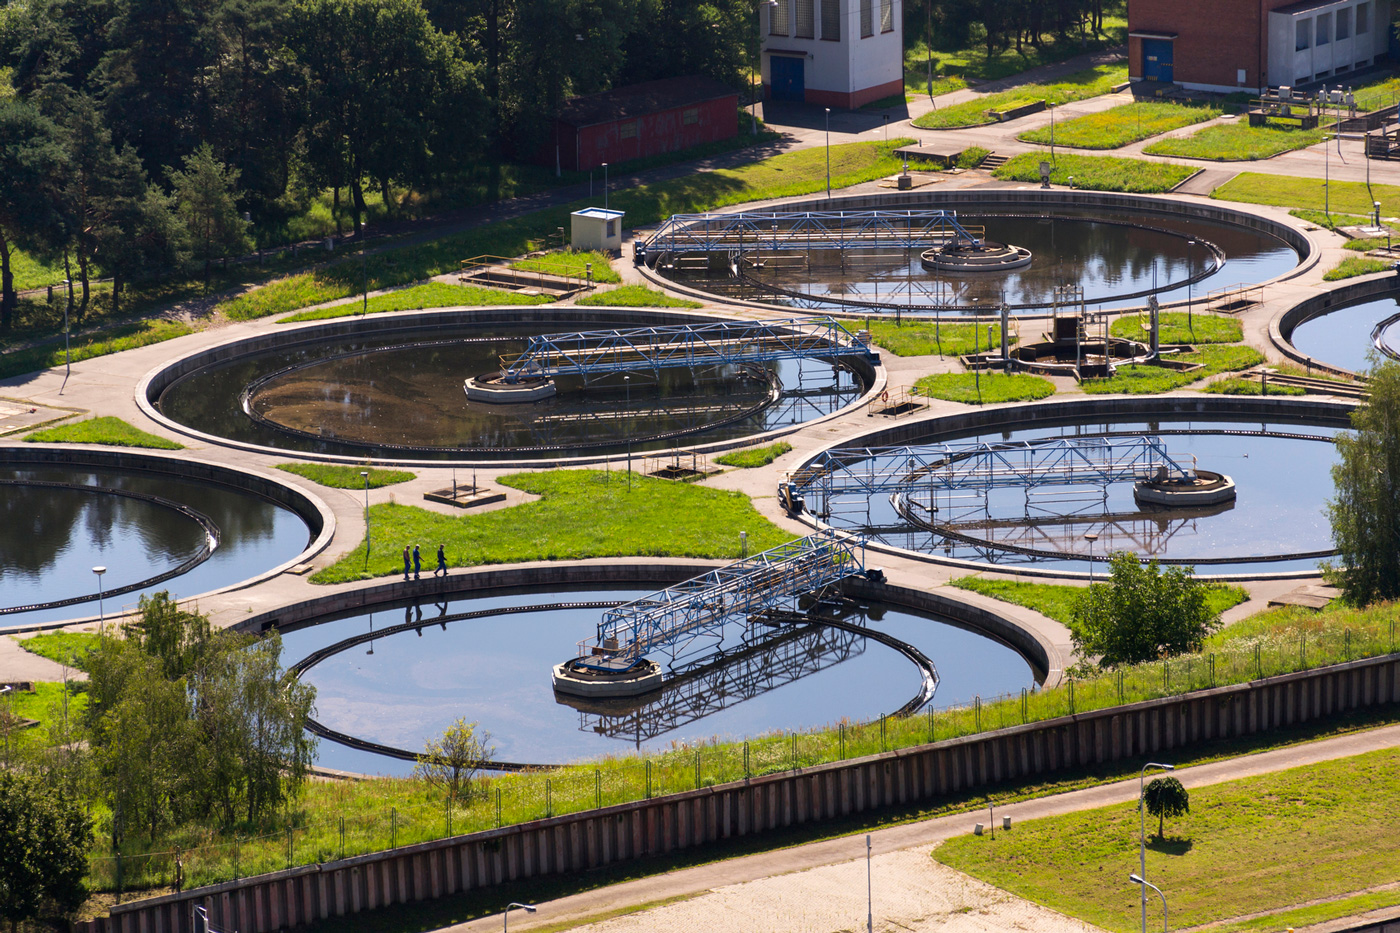 Aqua Assist Reduces Solids at 5 MGD Treatment Plant